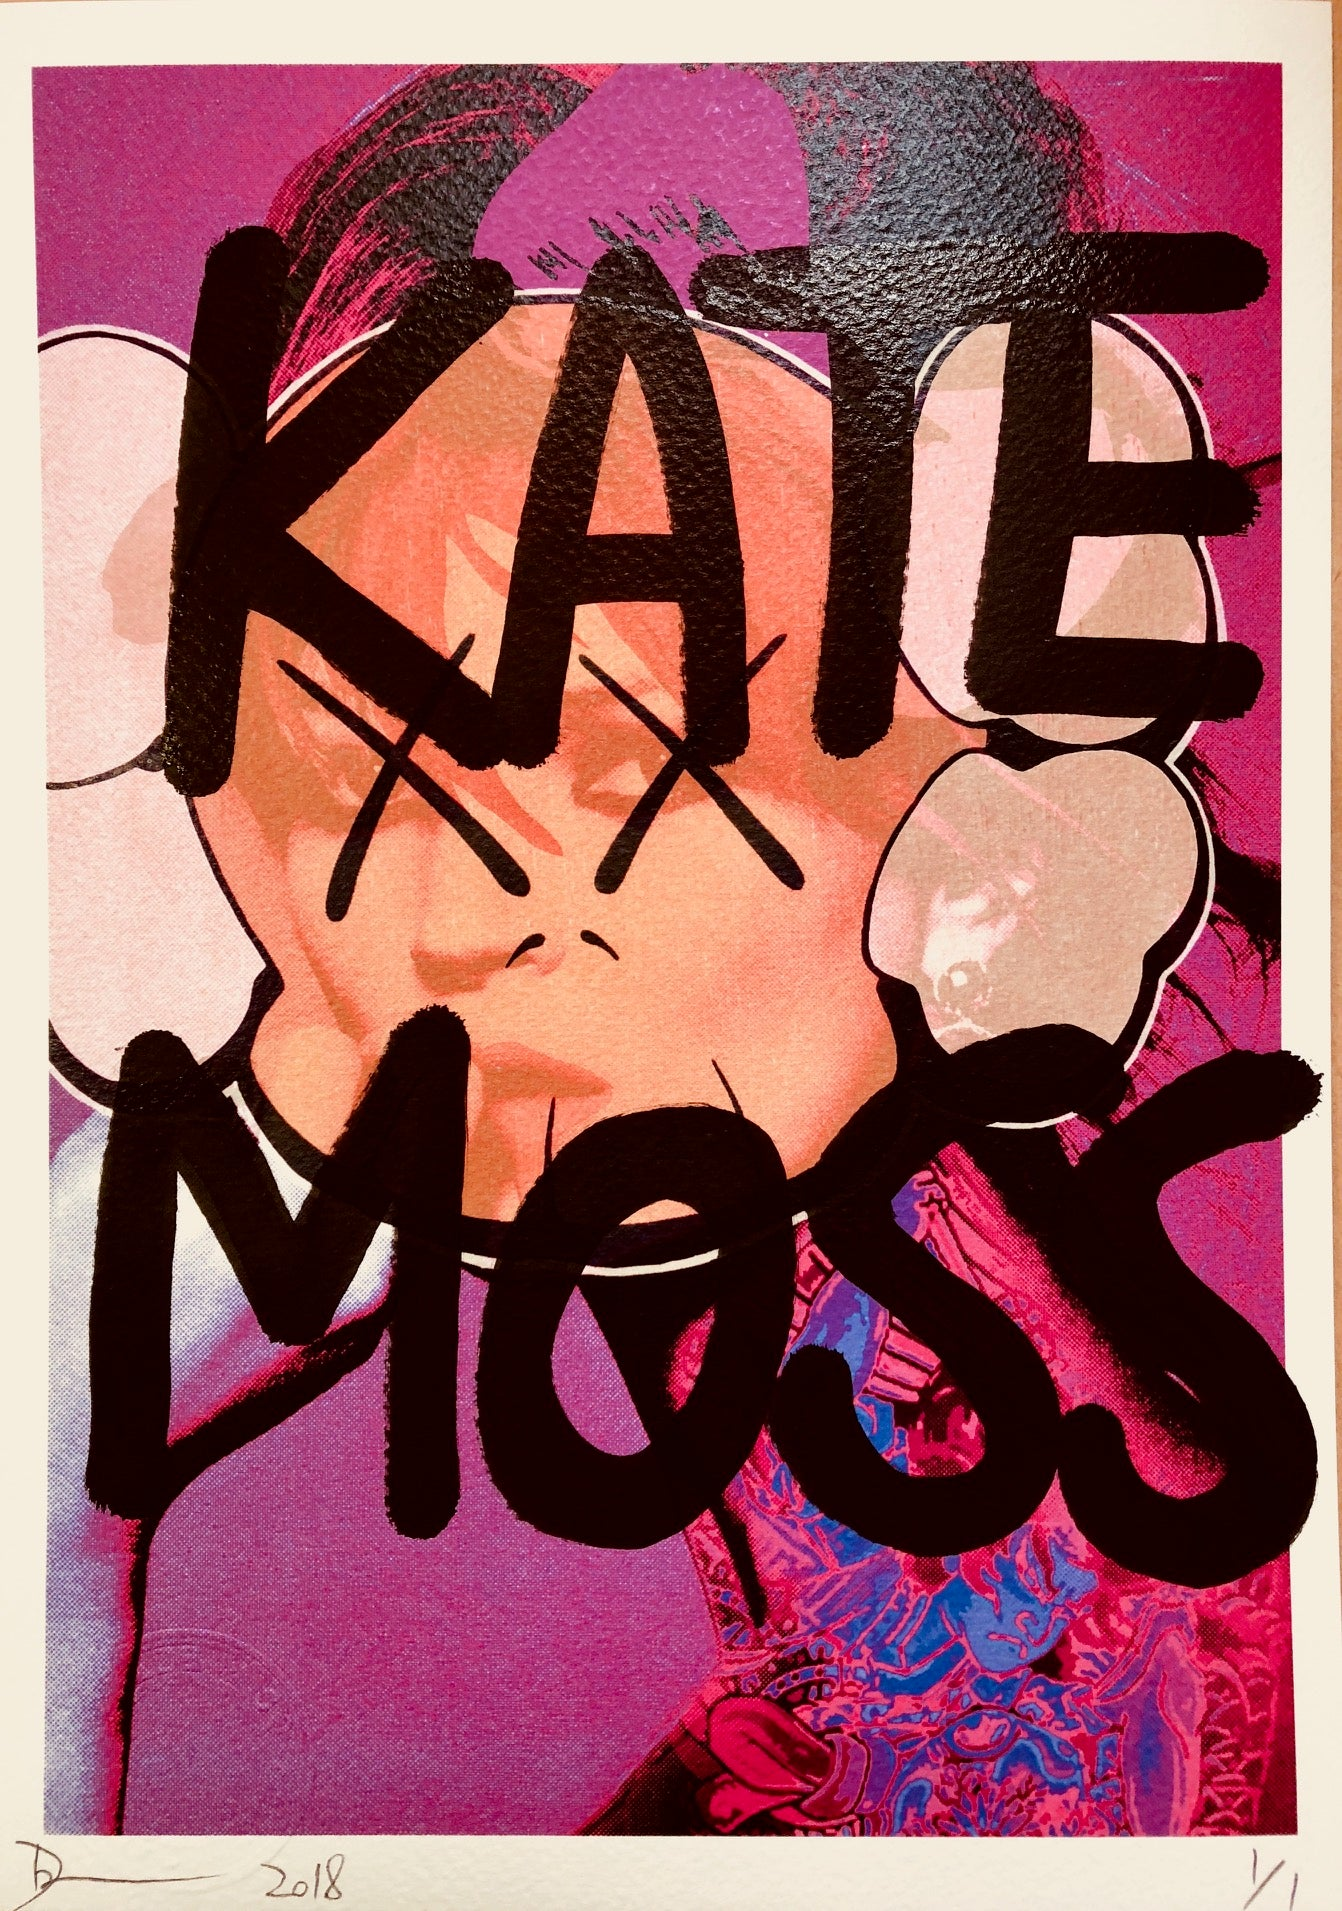 KATE MOSS XX Pink 29x21cm (Edition of 1)